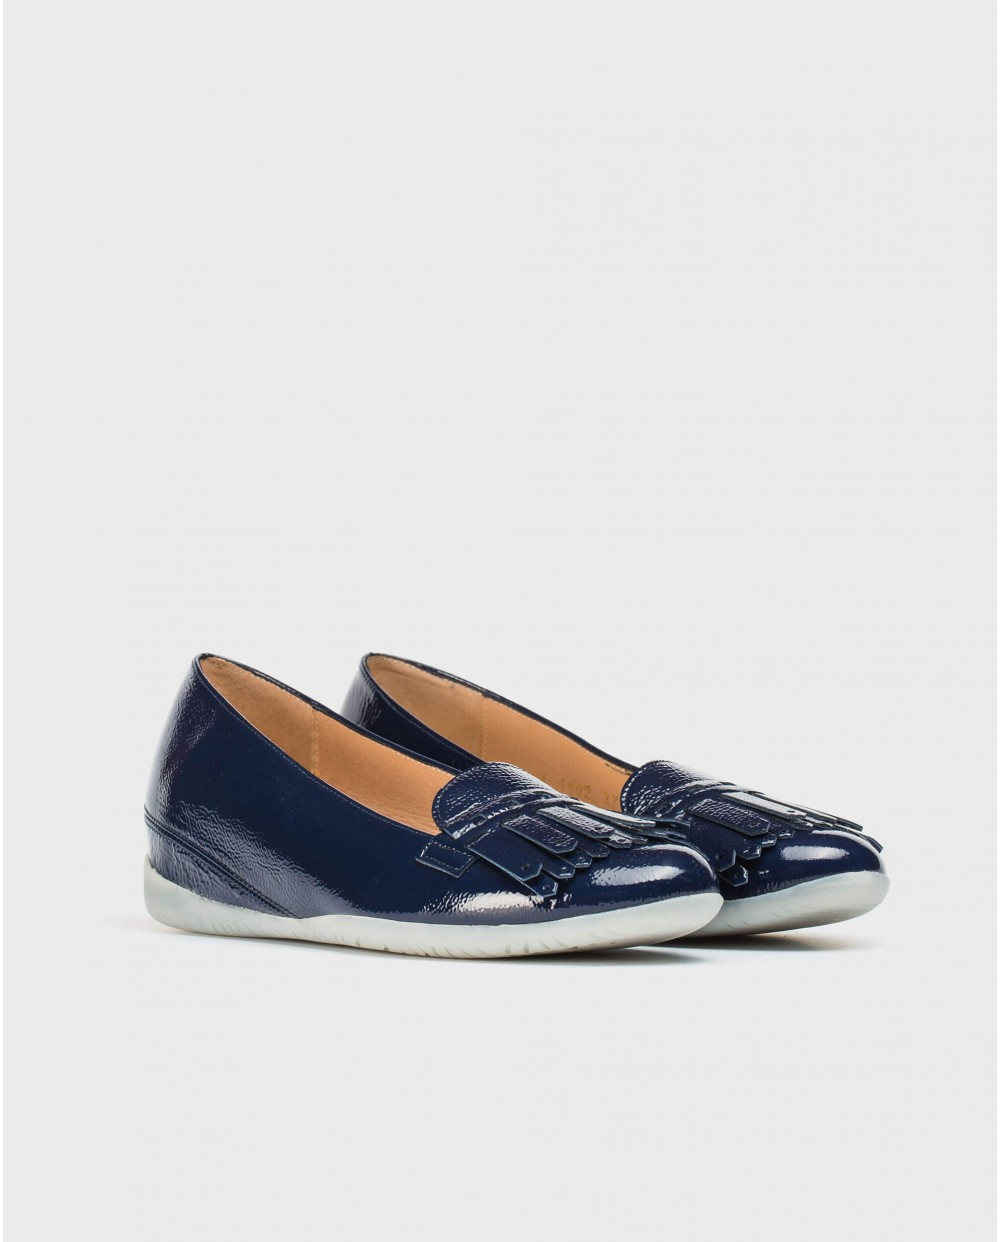 Wonders-Flat Shoes-Leather ballet pump with fringe detail